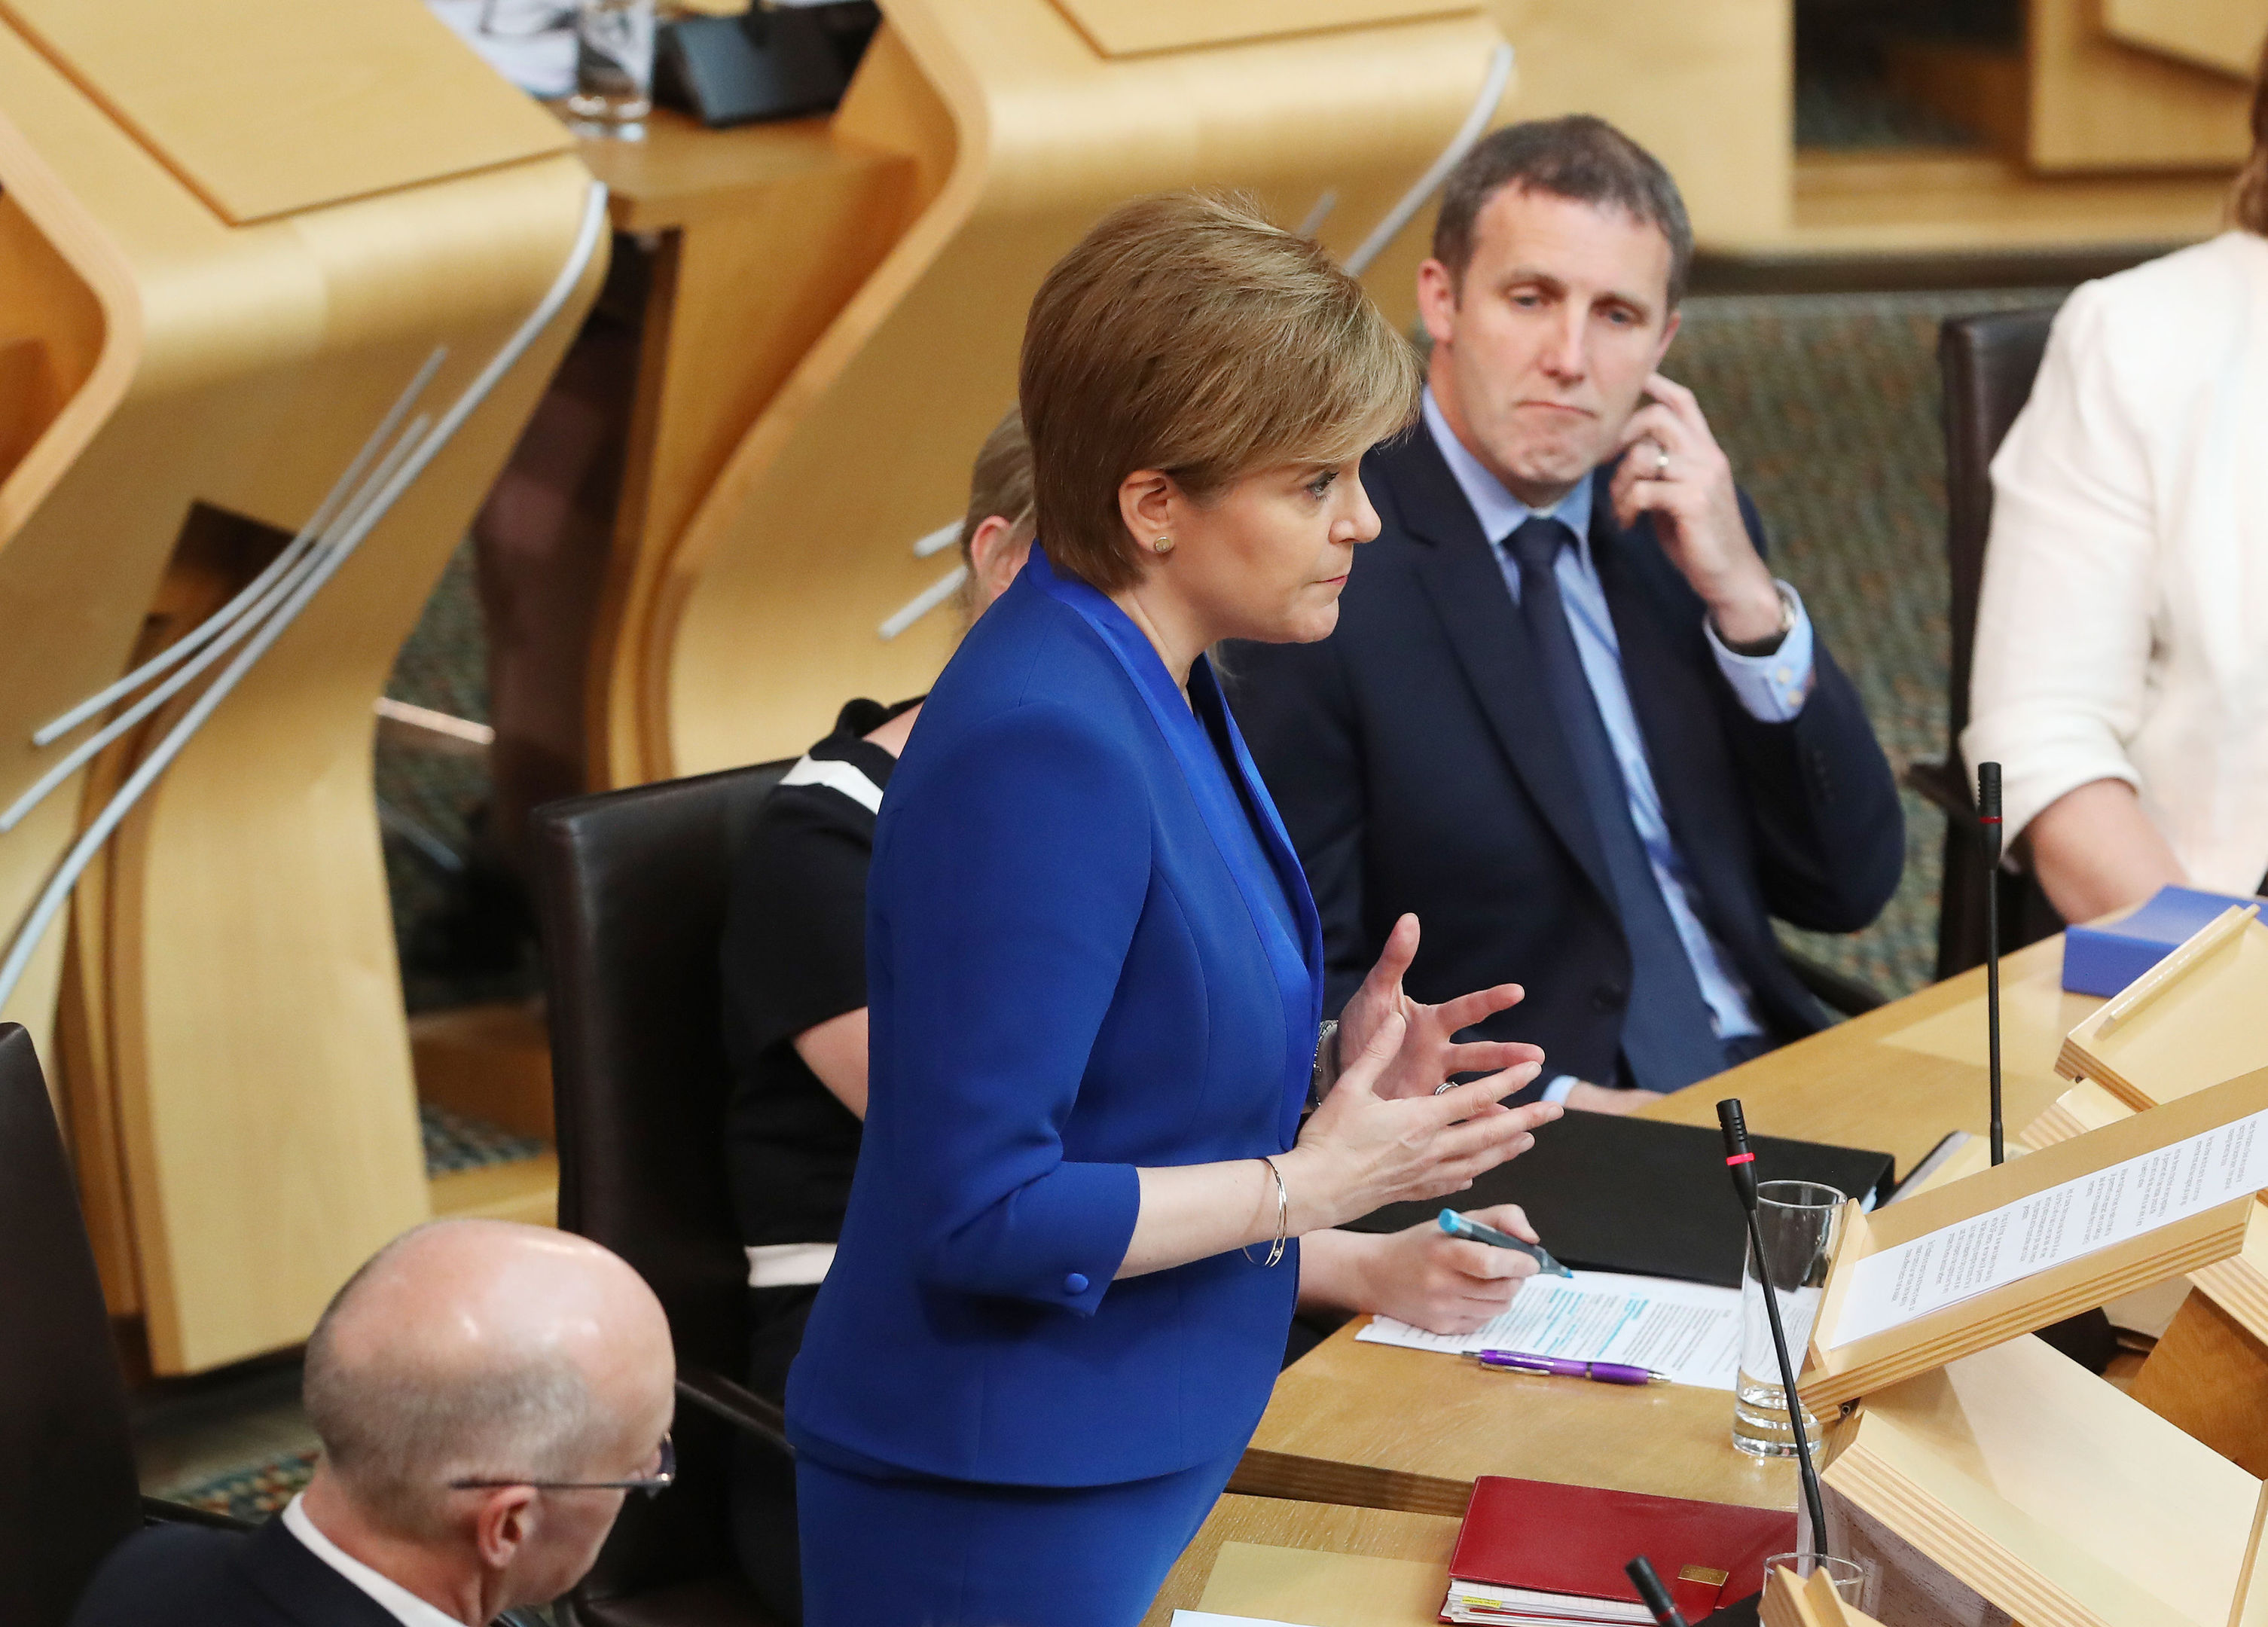 The First Minister has been reflecting on her plans for a second vote following the General Election.